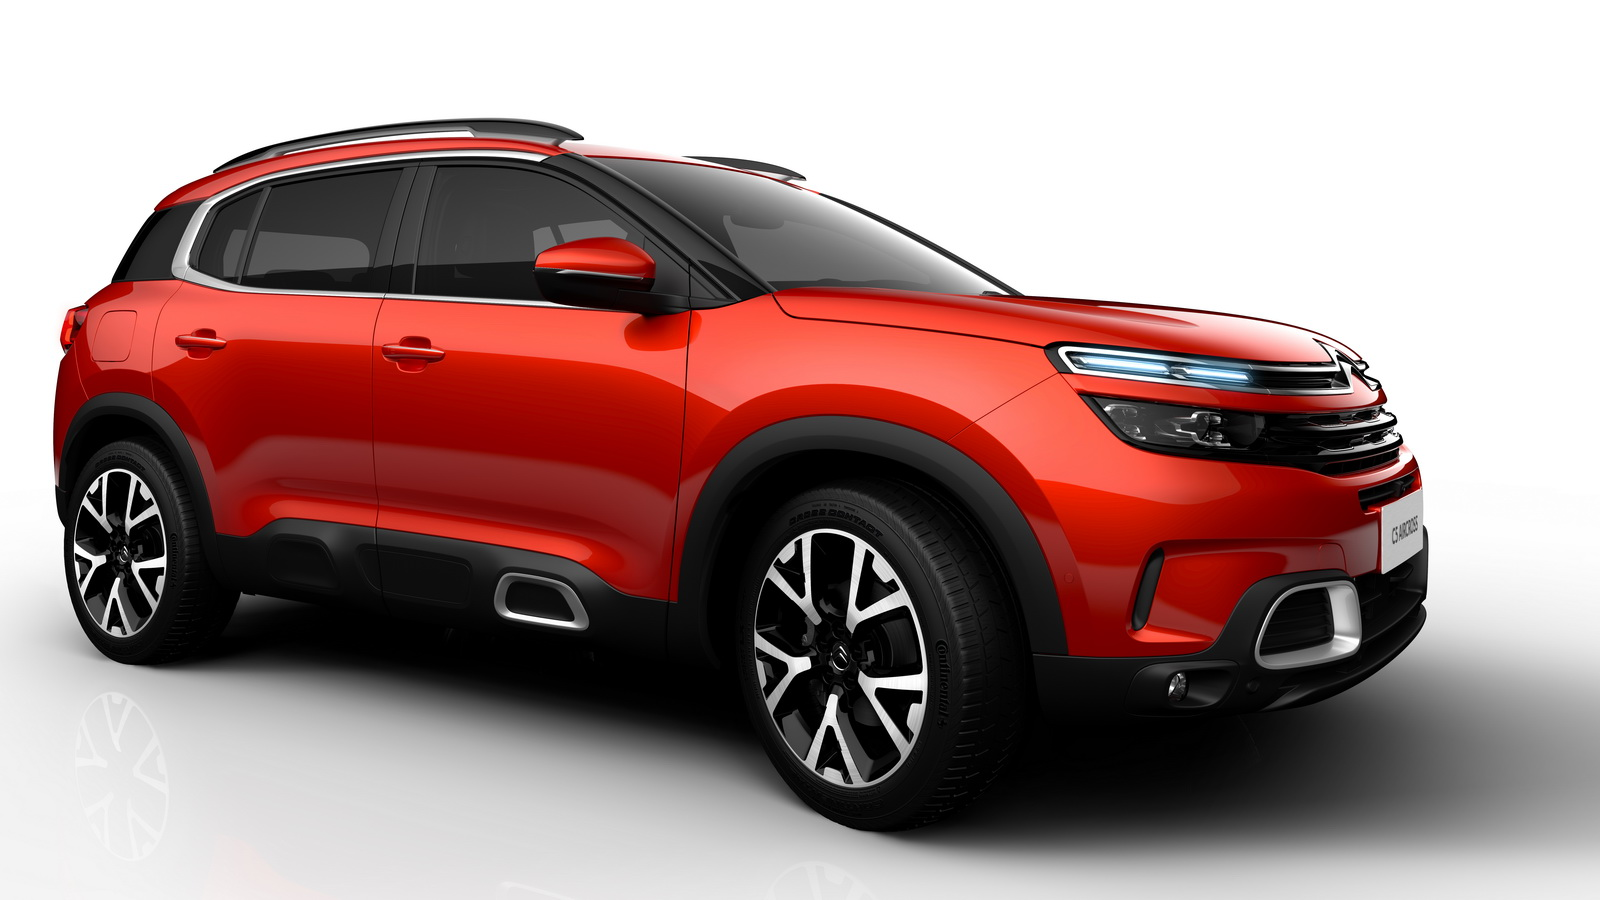 2018 citroen c5 aircross officially revealed gets innovative hydraulic suspension carscoops. Black Bedroom Furniture Sets. Home Design Ideas